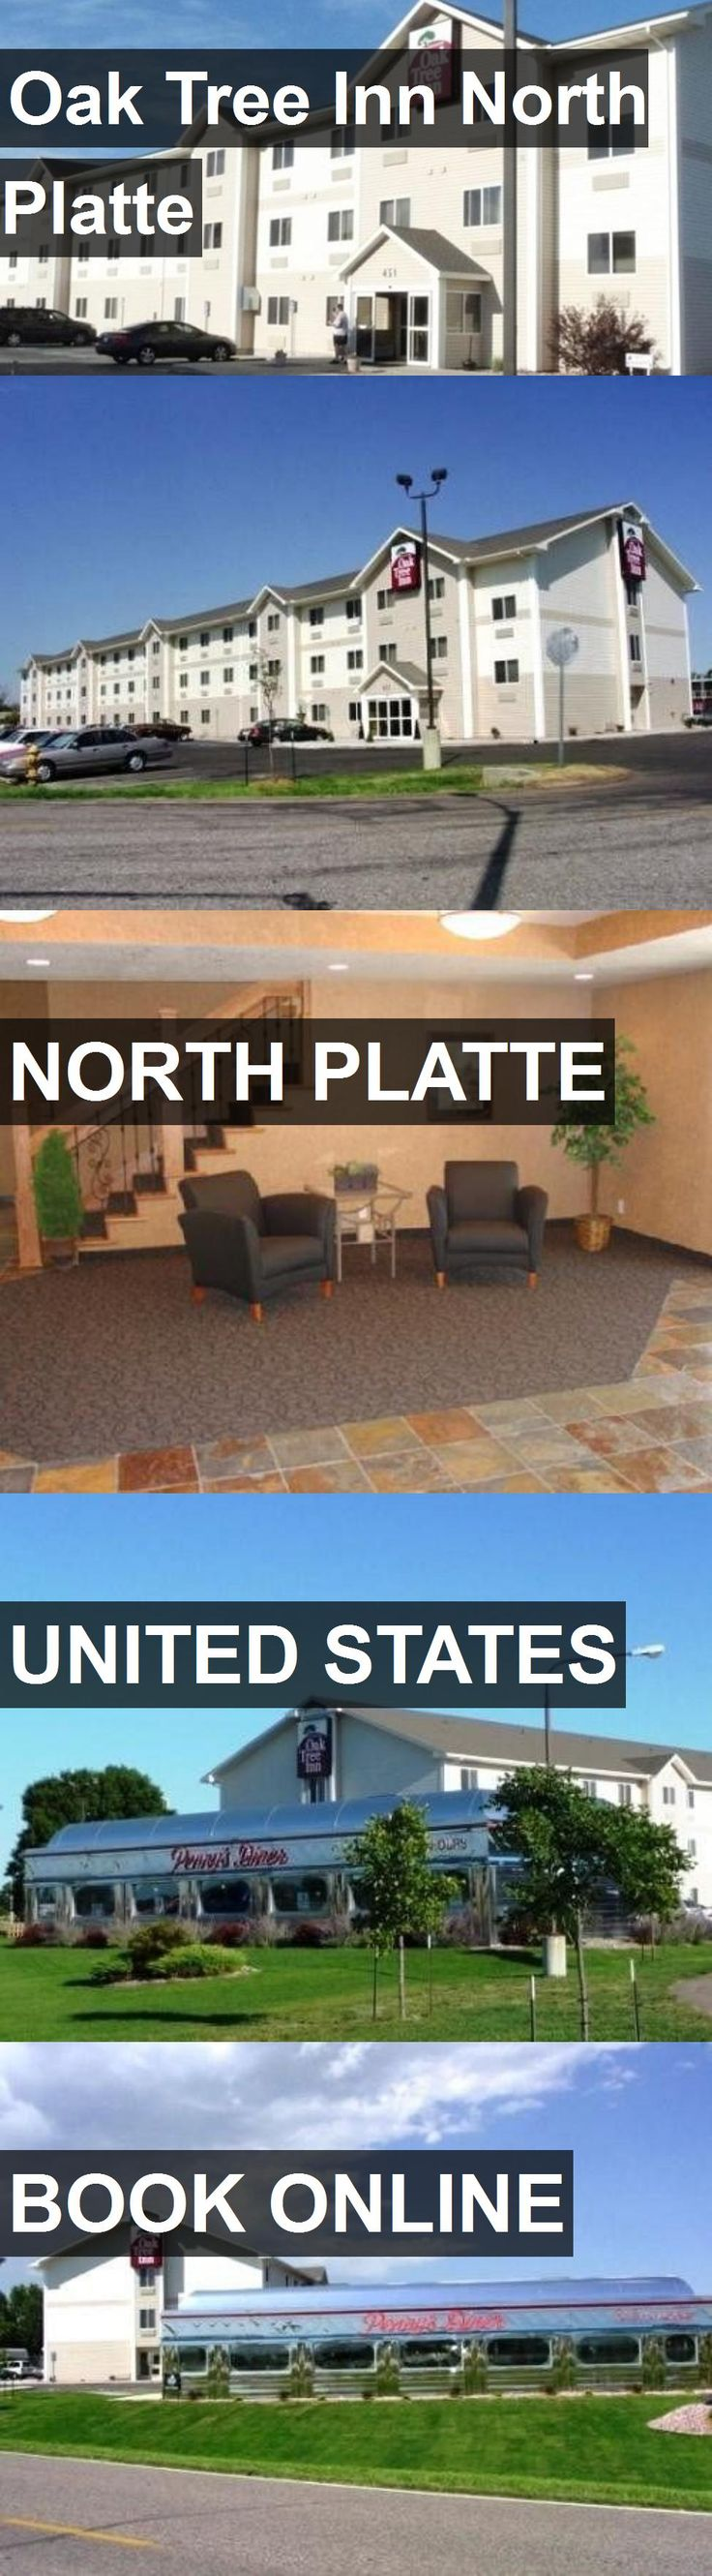 Hotel Oak Tree Inn North Platte in North Platte, United States. For more information, photos, reviews and best prices please follow the link. #UnitedStates #NorthPlatte #travel #vacation #hotel